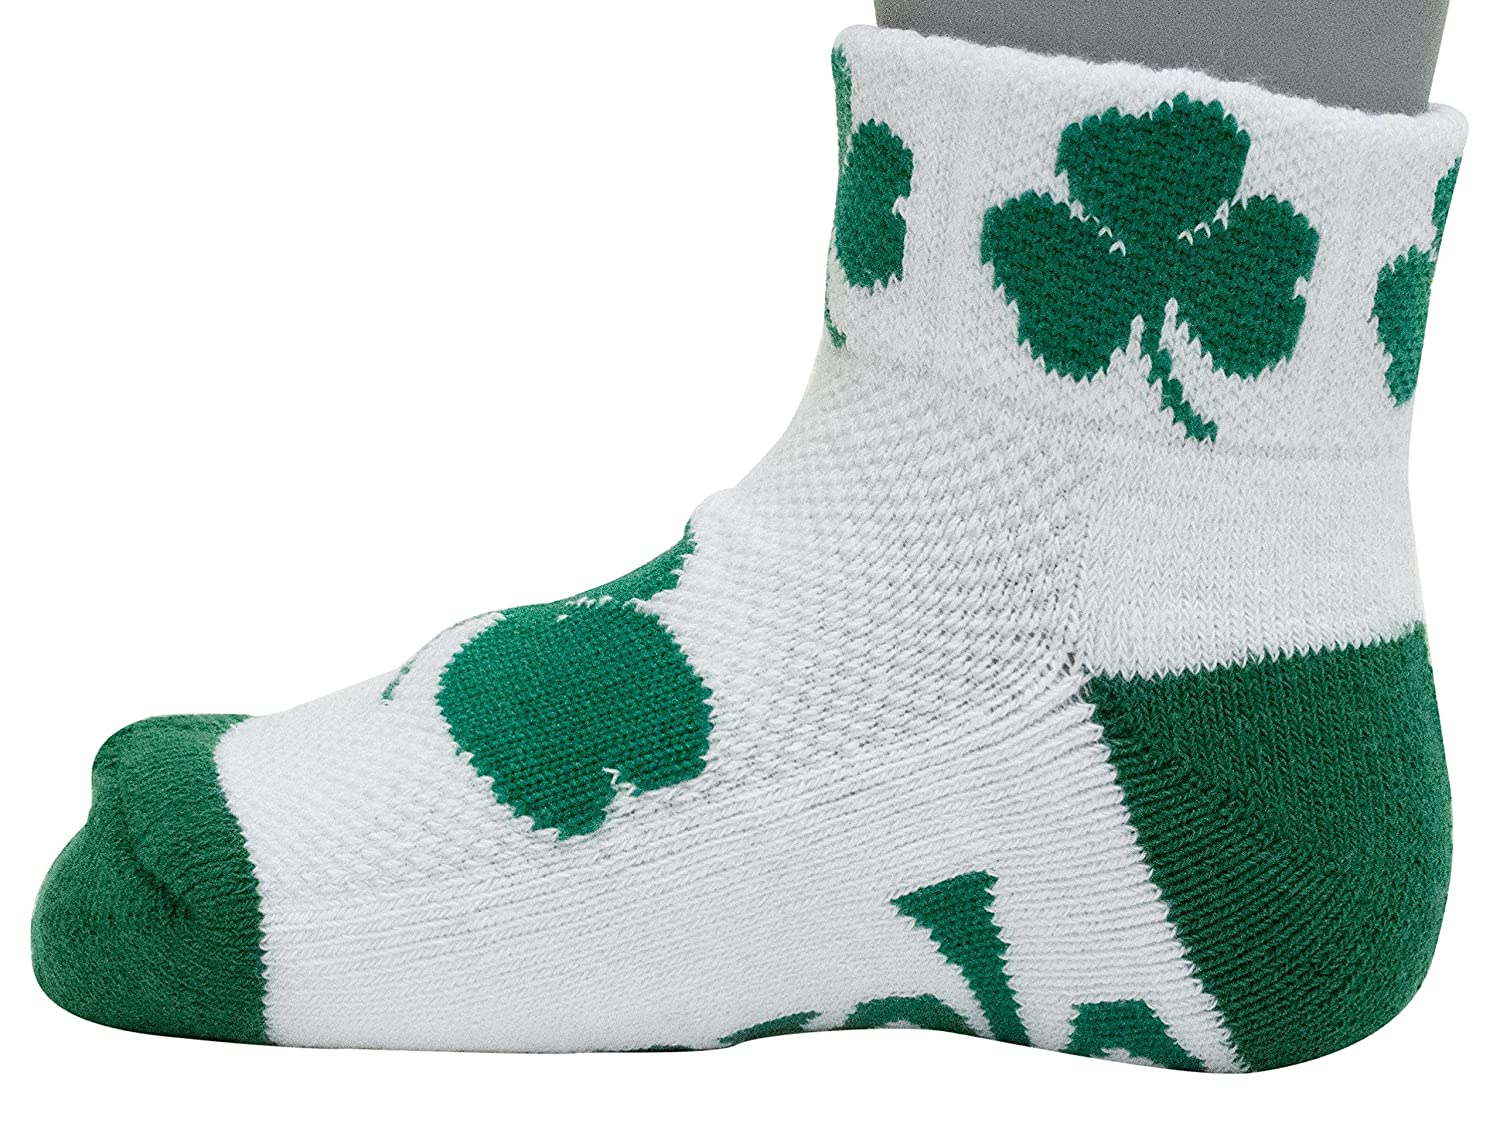 Donegal Bay NCAA Notre Dame Fighting Irish Youth QTR Socks Green 3 5 Years